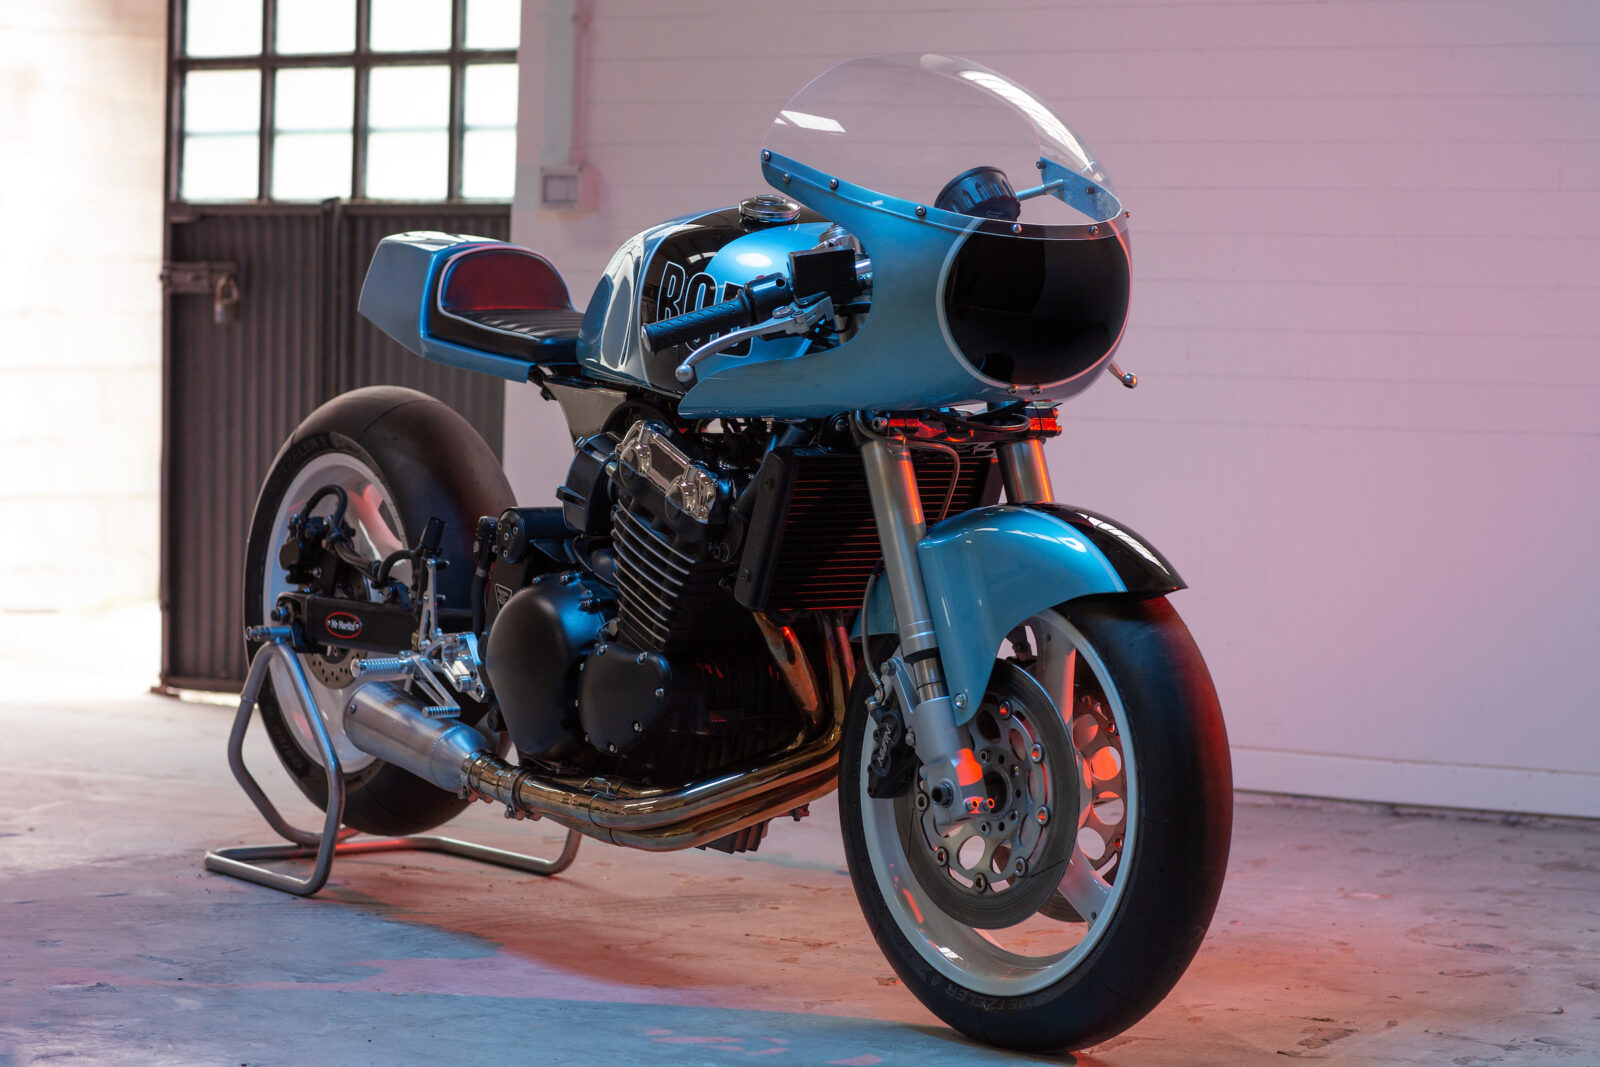 The Triumph Bob - A Custom Motorcycle by Mr Martini 2